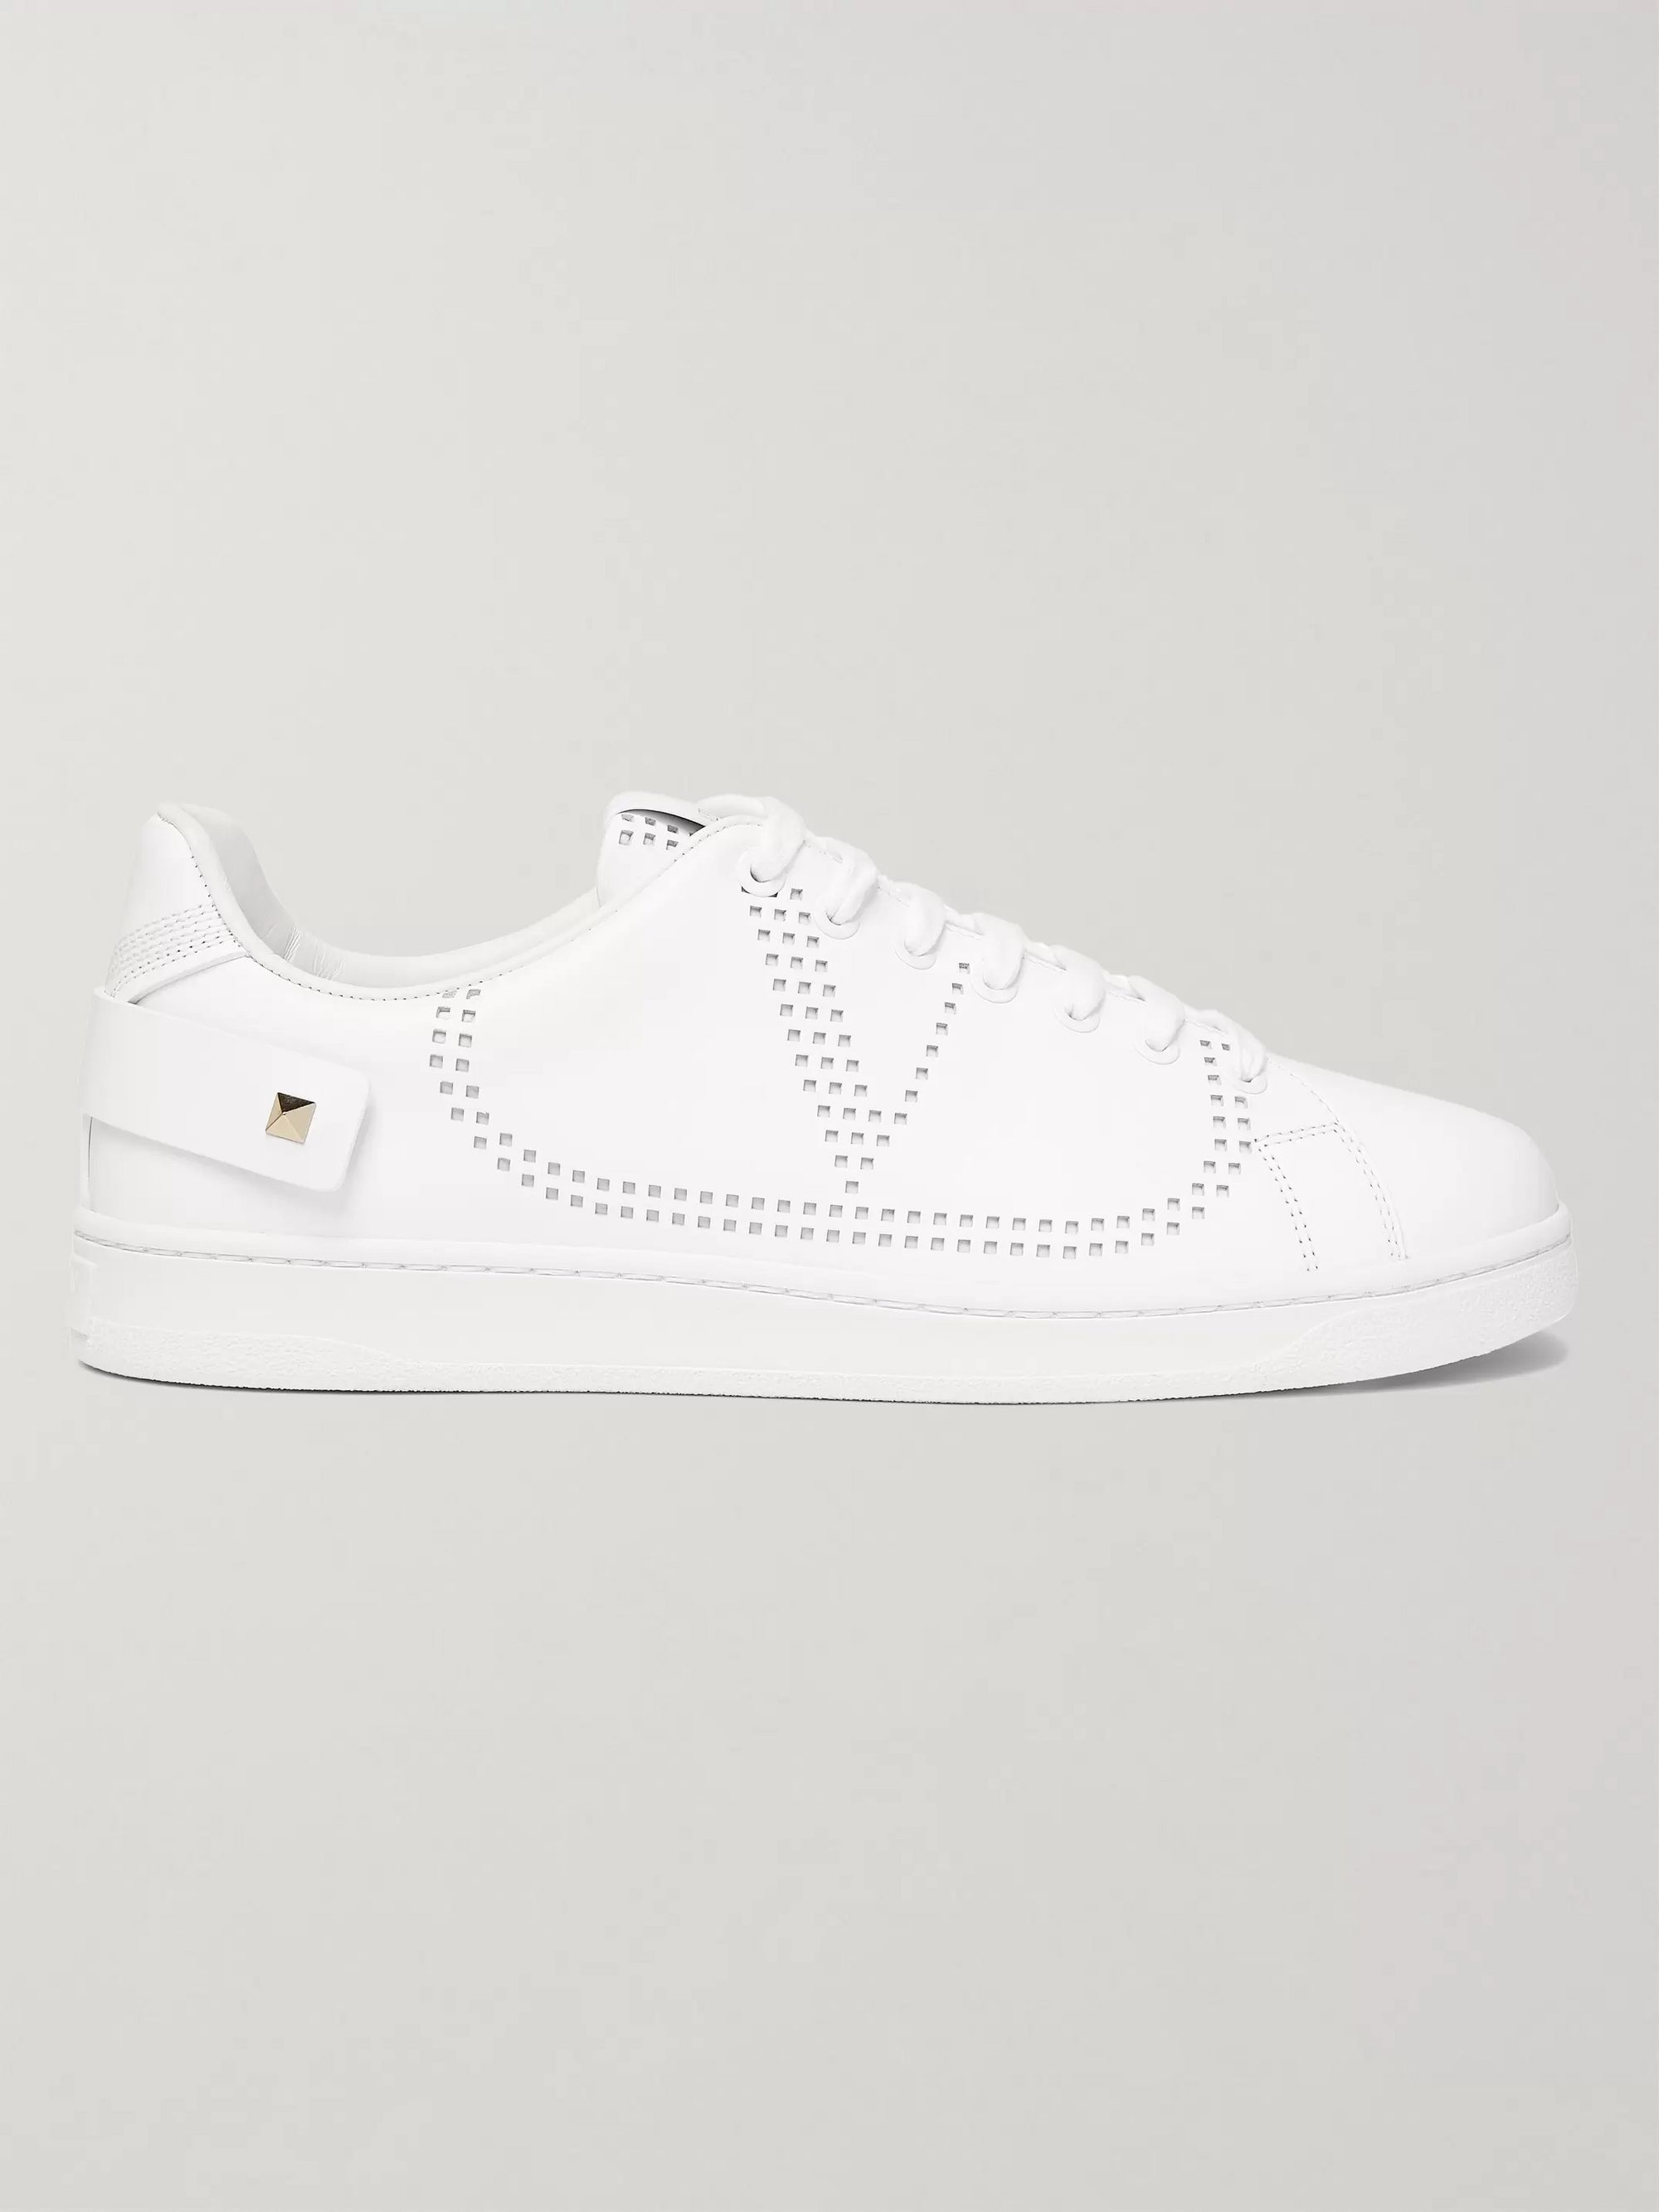 Valentino Valentino Garavani Backnet Perforated Leather Sneakers